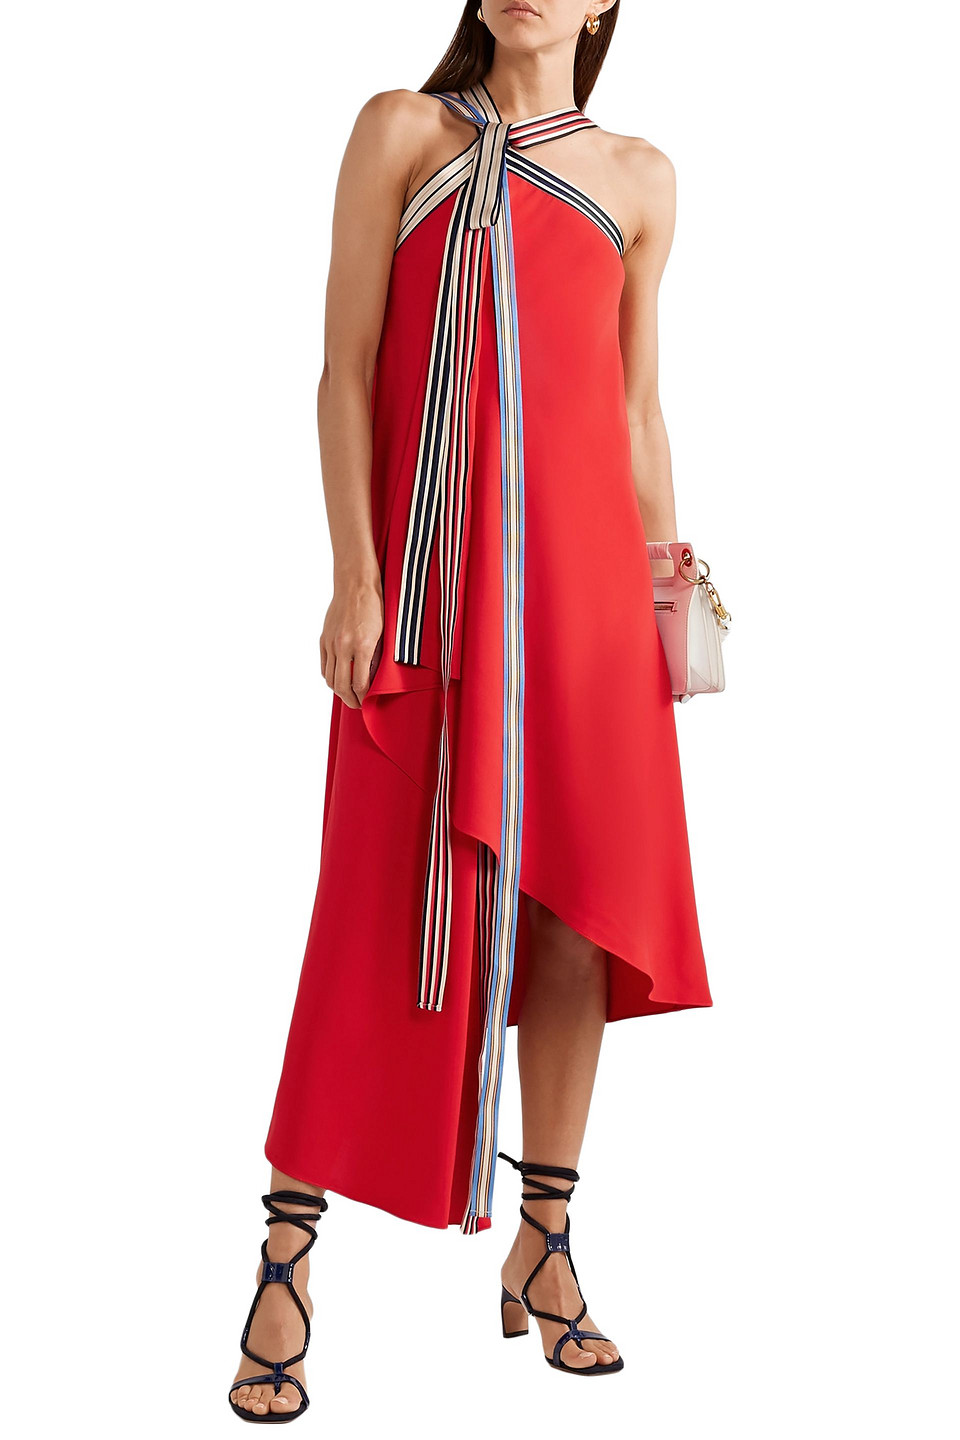 Monse | Monse Woman Asymmetric Grosgrain-trimmed Crepe Midi Dress Red | Clouty